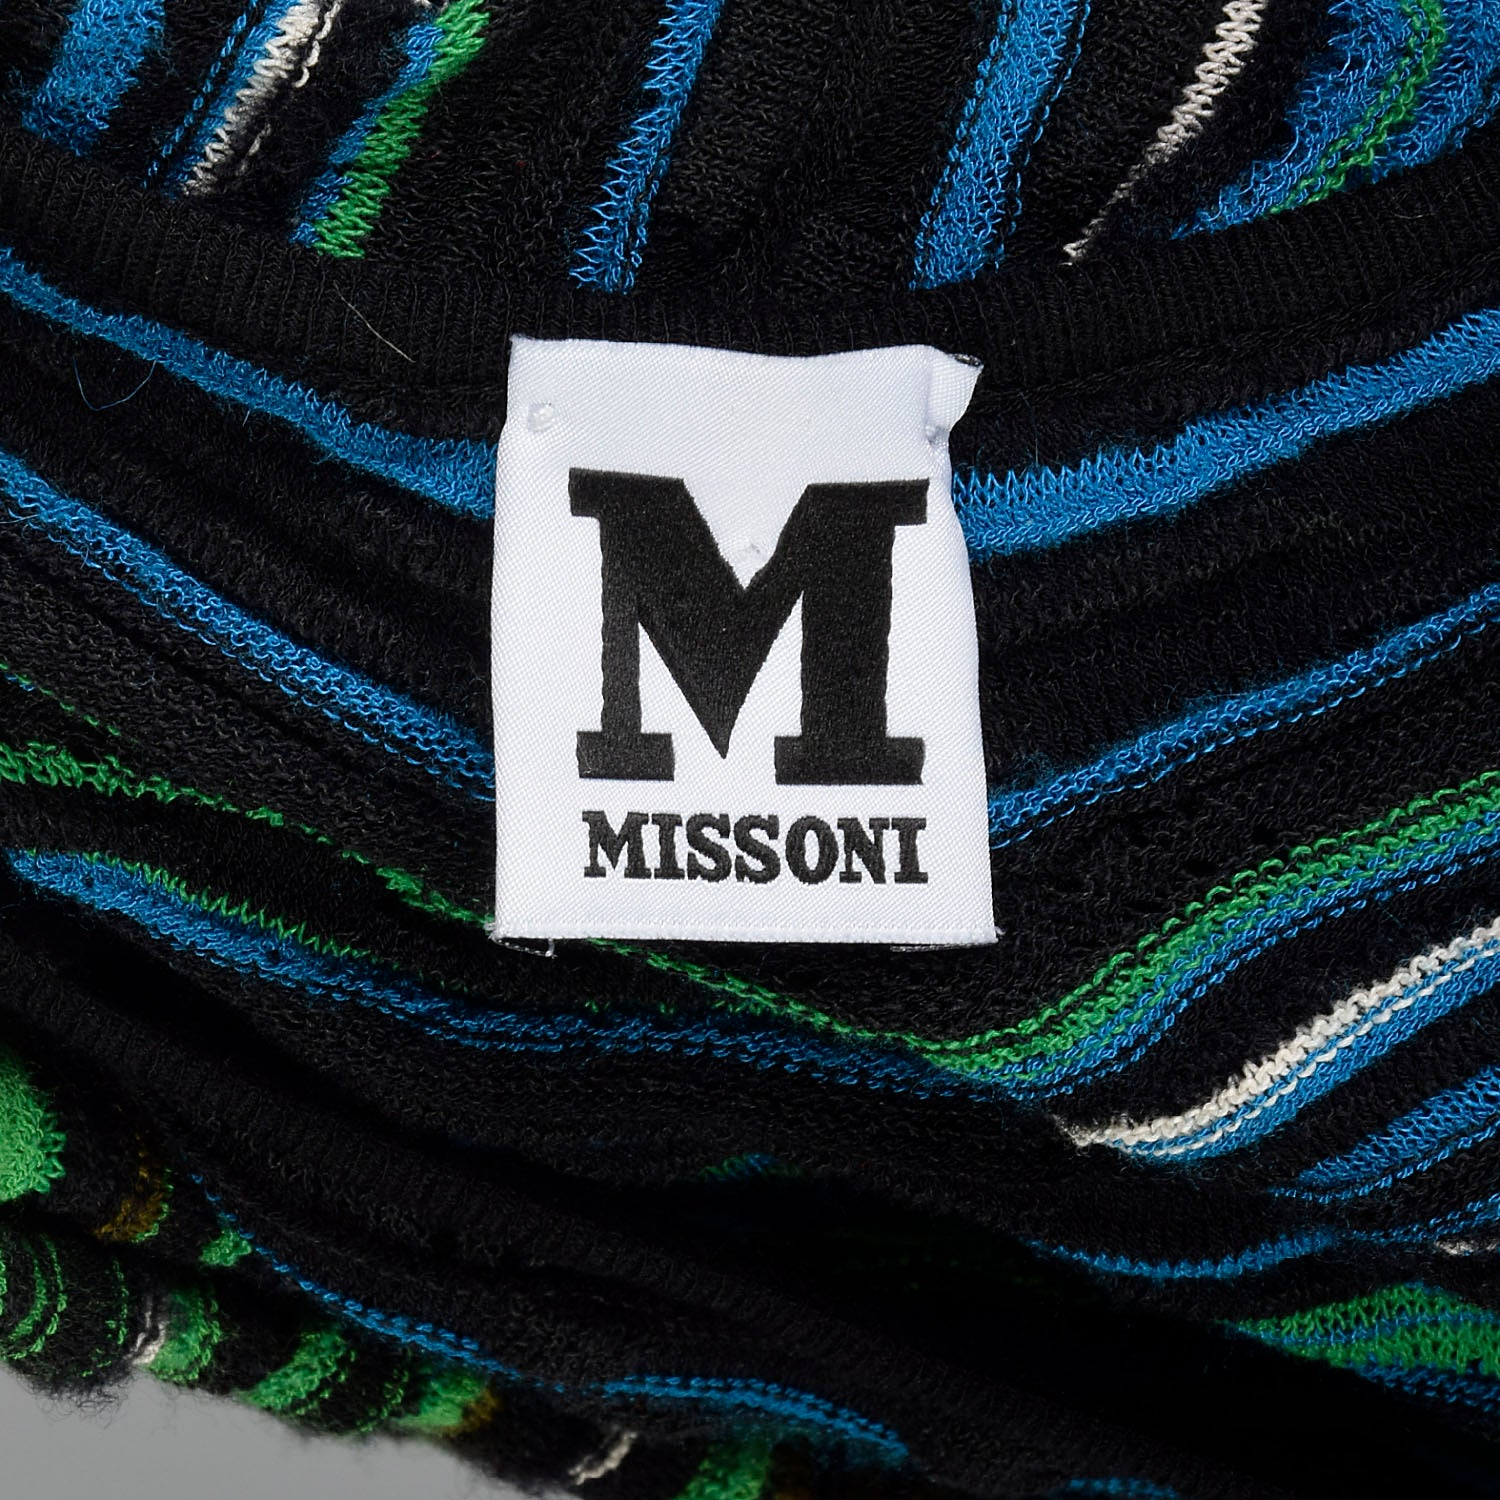 Medium M Missoni Green Knit Dress Blue Striped Long Sleeve